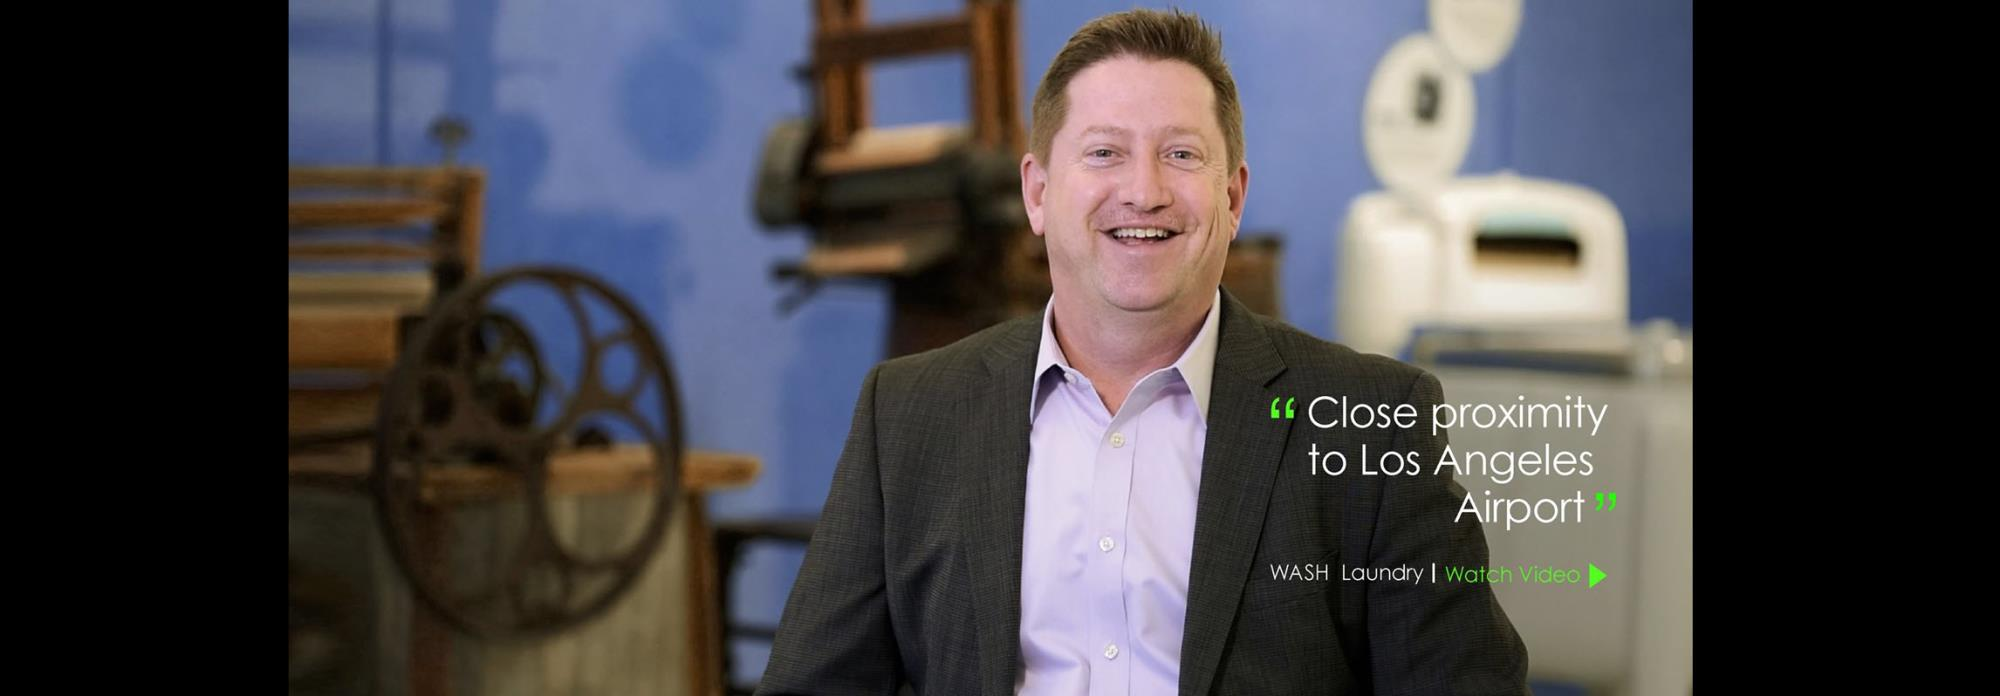 WASH Multifamily Laundry Systems Video Testimonial